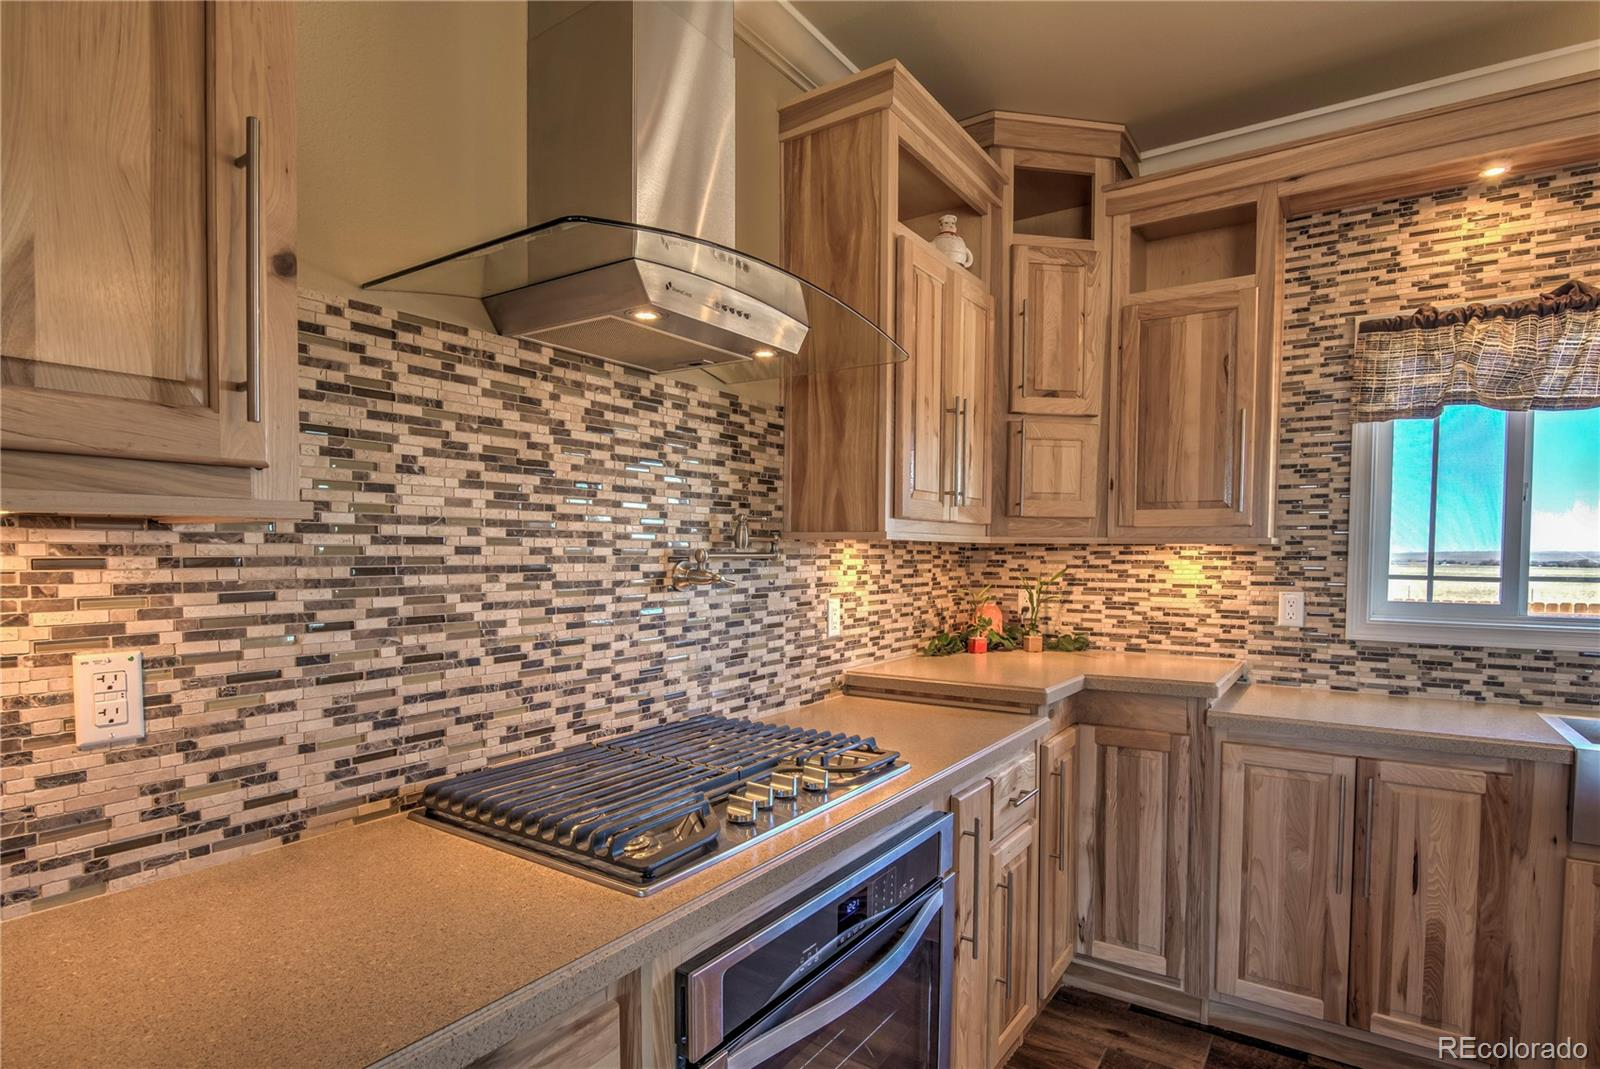 MLS# 8441040 - 2 - 595 Spotted Owl Way, Calhan, CO 80808